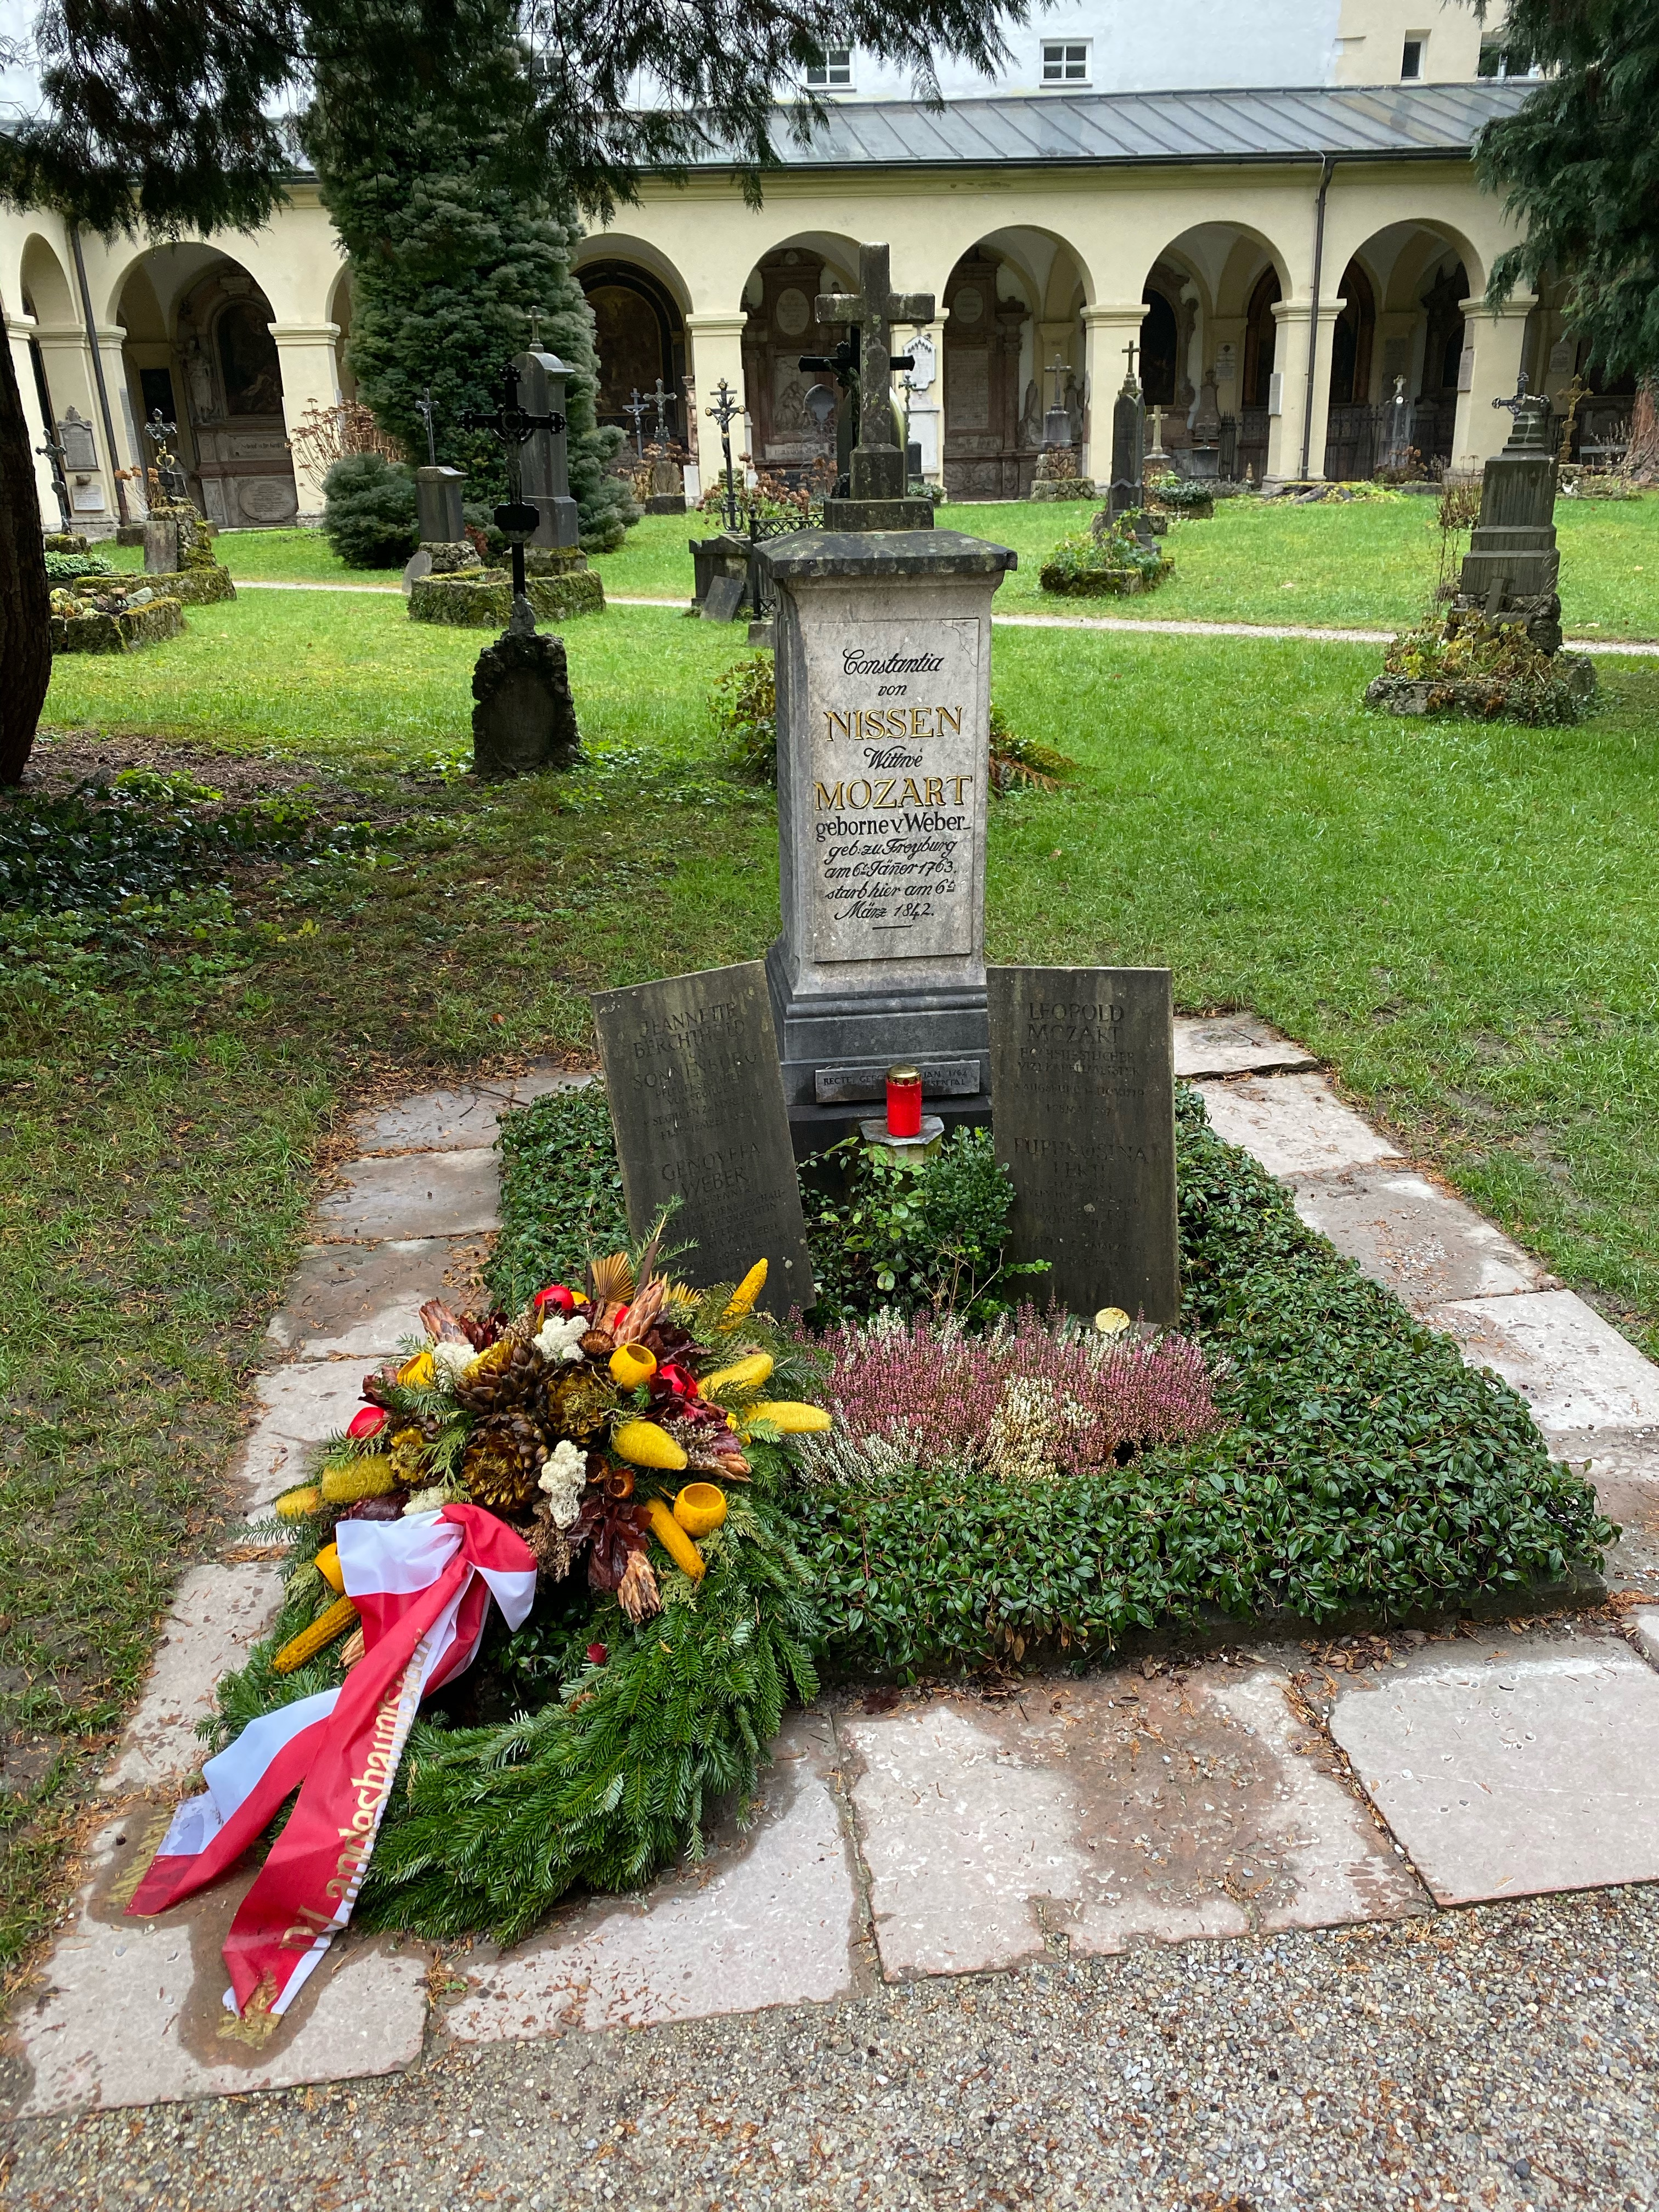 The grave of members of the Mozart family at St. Sebastian's Cemetery in Salzburg.